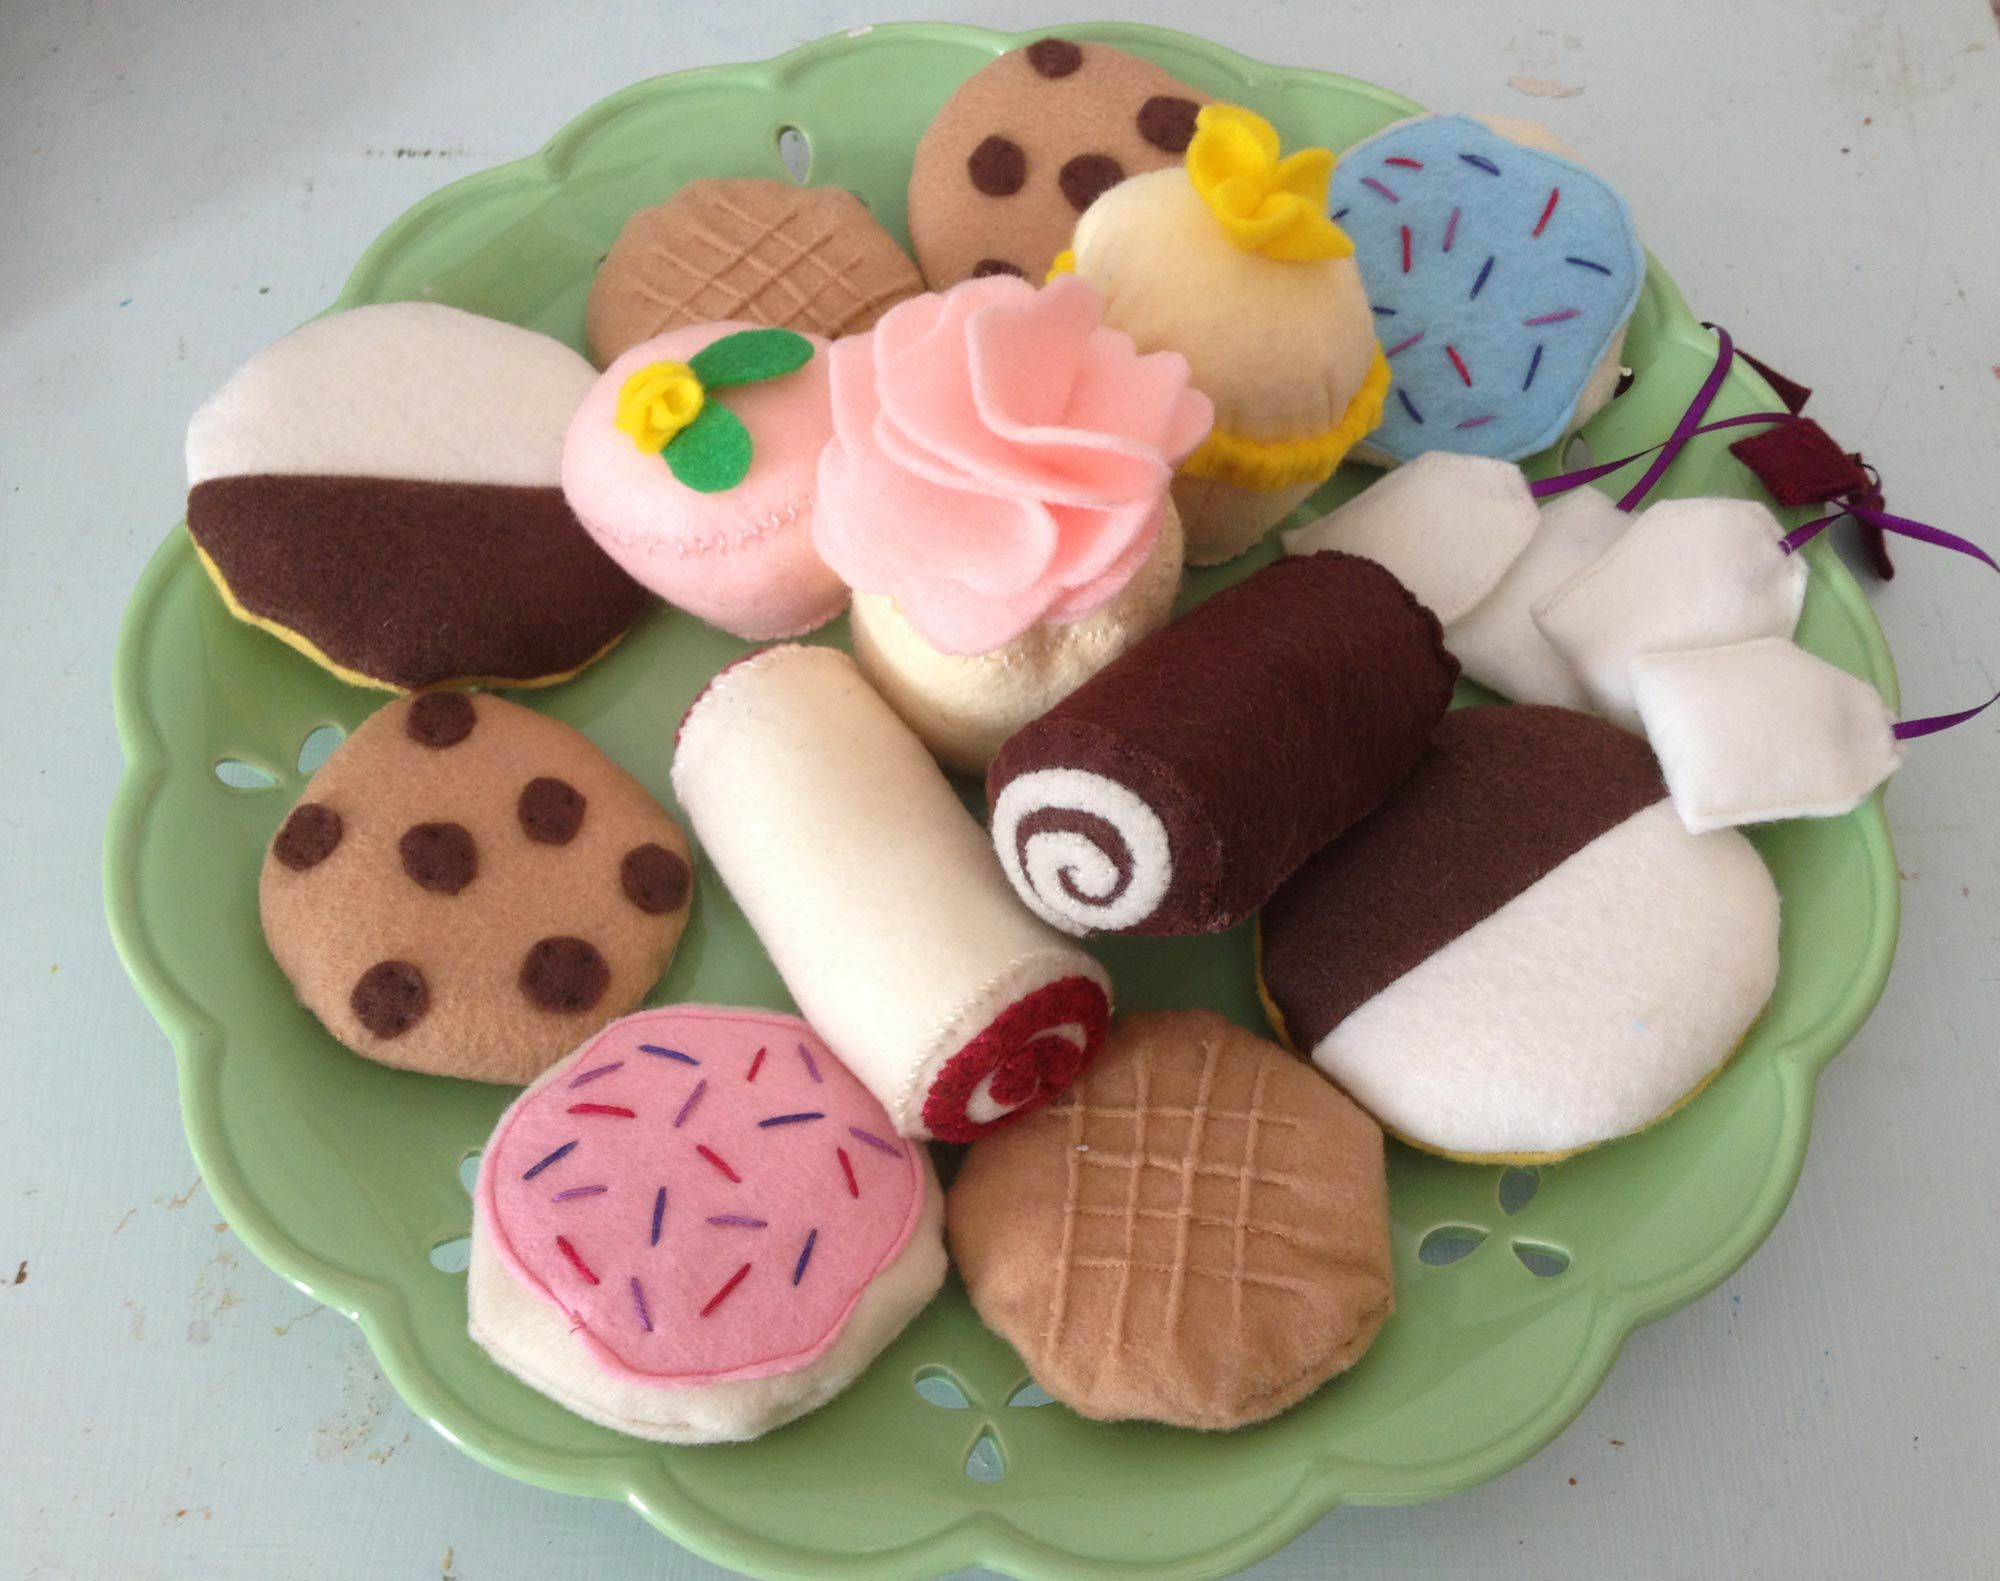 How to make felt food our mega list of free tutorials felt food how to make felt food our gigantic list of free online tutorials patterns baditri Gallery